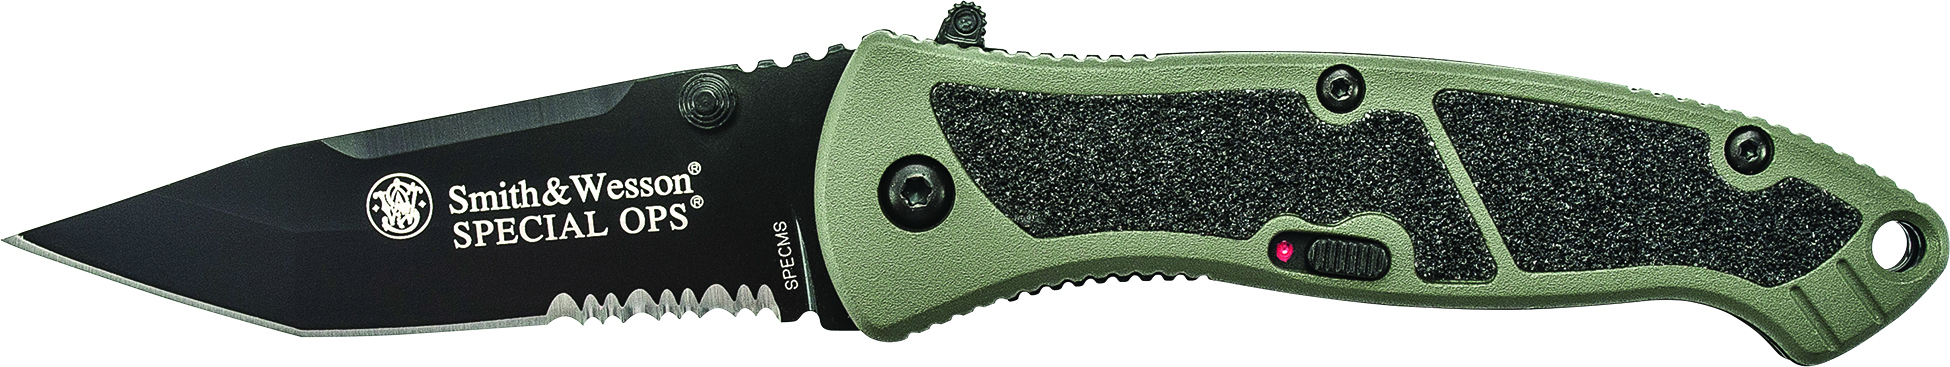 SPECMS - Smith & Wesson Medium Special Ops M.A.G.I.C. Assist Aluminum Green Handle w/40% Serrated Black Tanto Blade